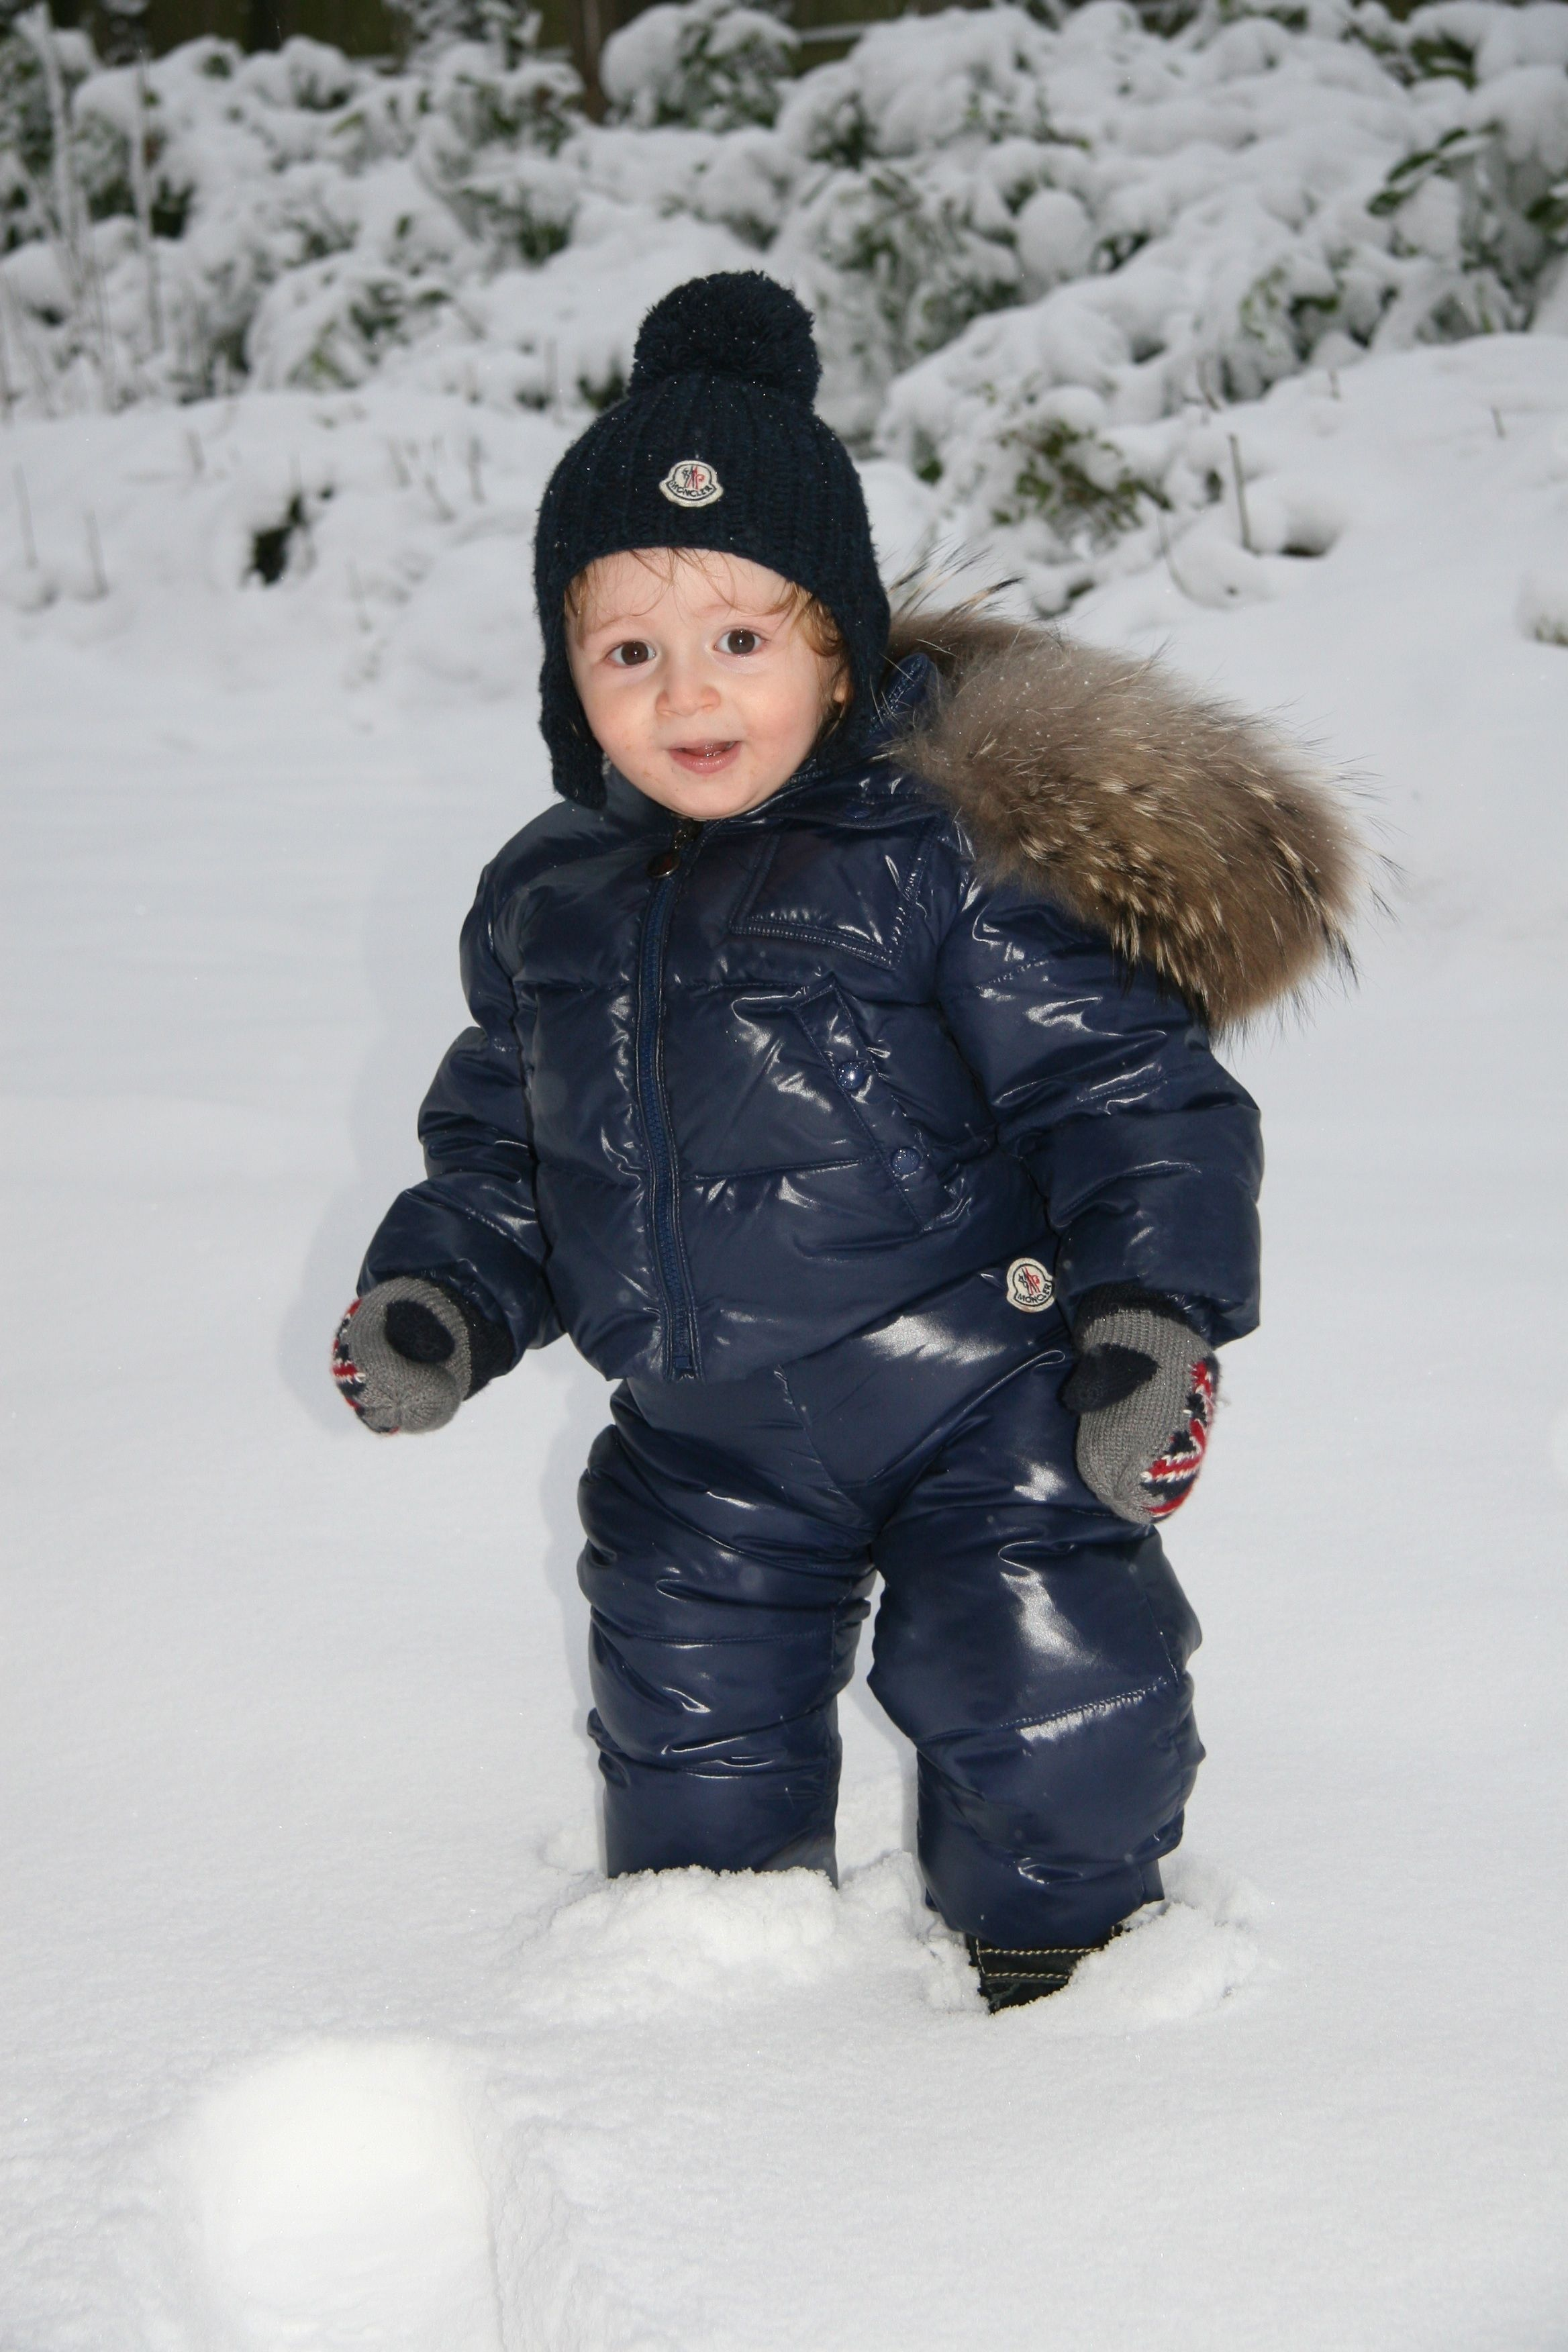 baby moncler snowsuit, HM gloves. Snow suit, Winter